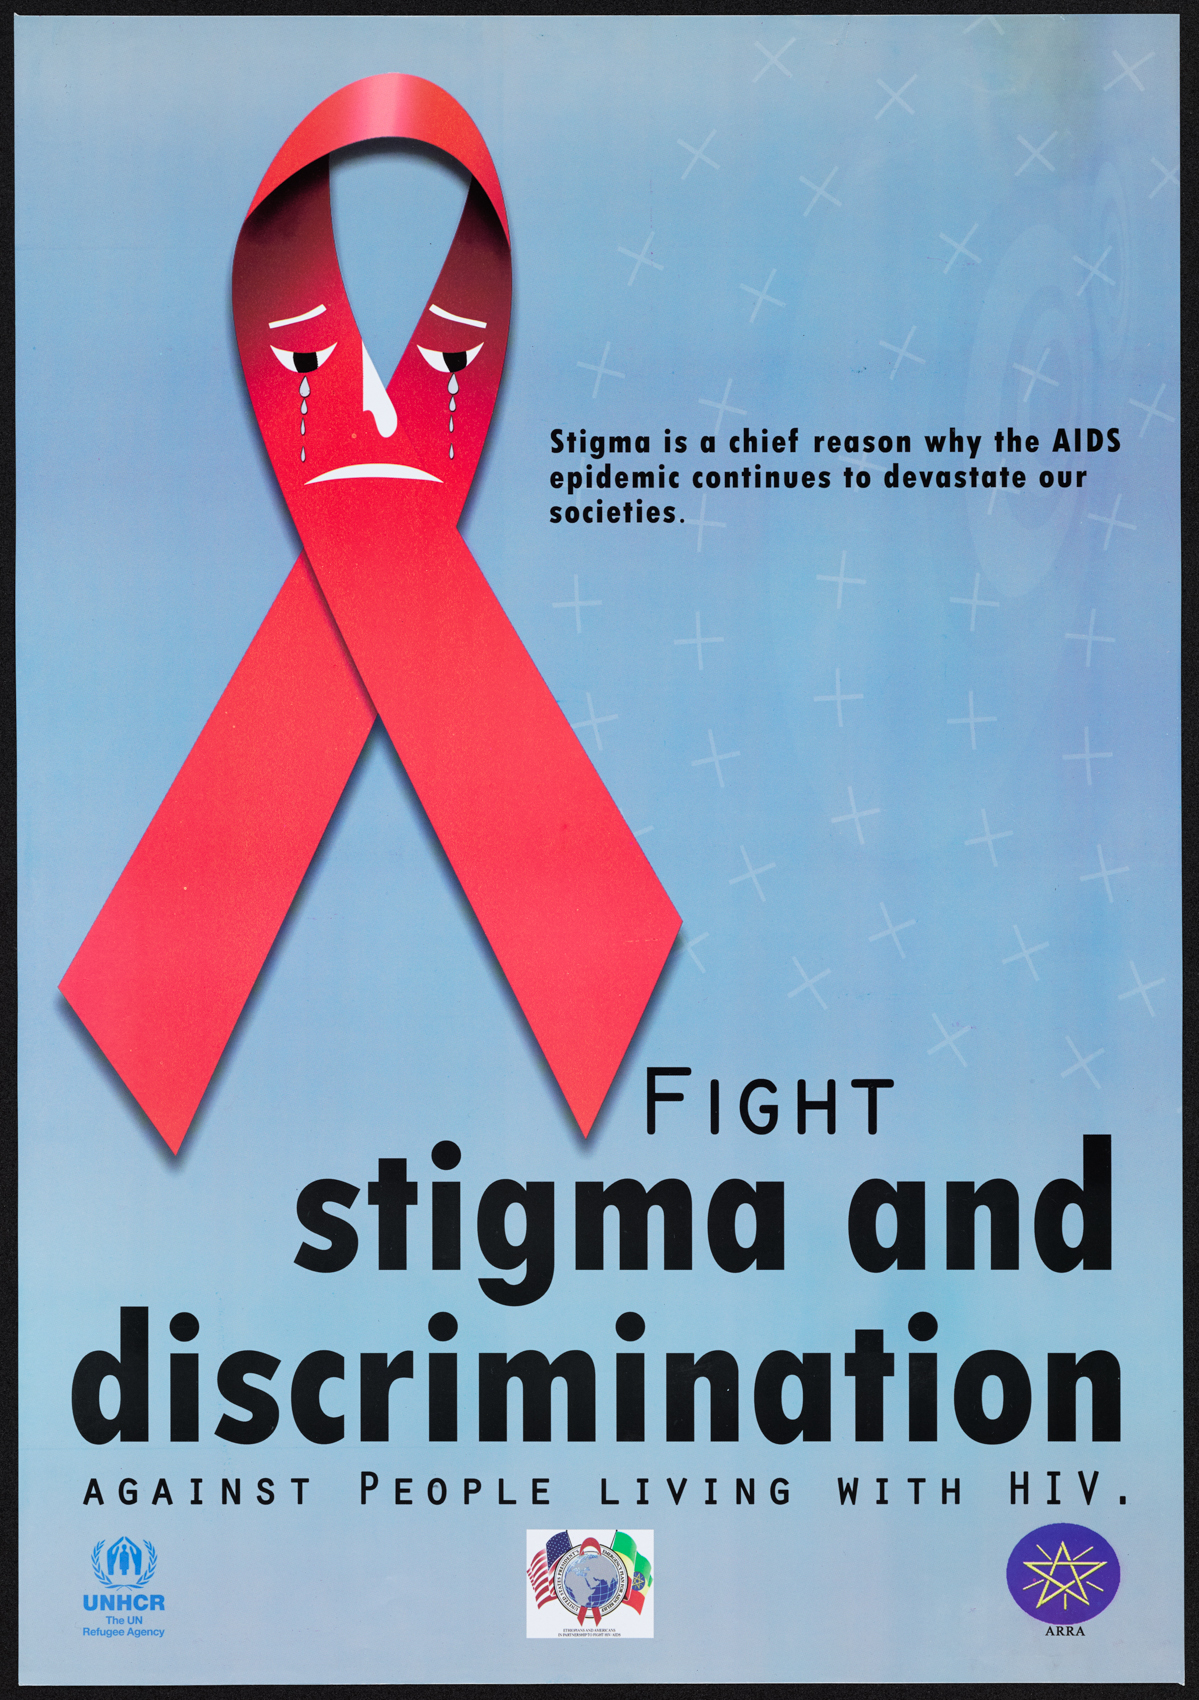 stigma of hiv aids The combination of external stigma and internal oppression of the self may impose a heavy burden in our experience of working with people with hiv in africa, the result of this burden is often a downward spiral marked by fatalism, self-loathing, and isolation from others.